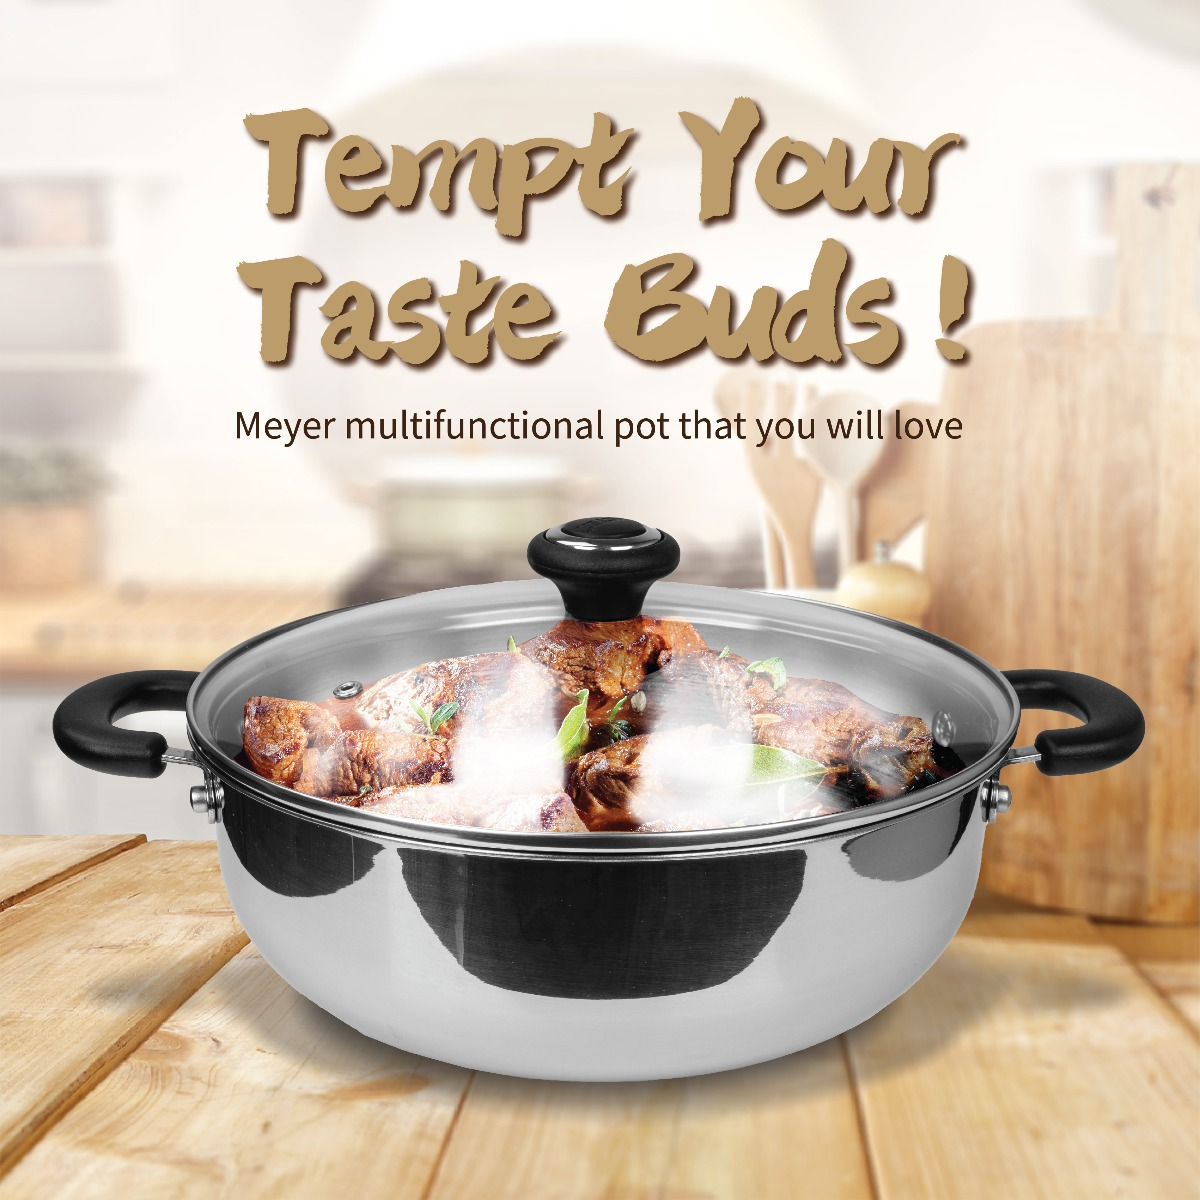 Pamper your palate with spicy chicken hotpot created in multifunctional cookware